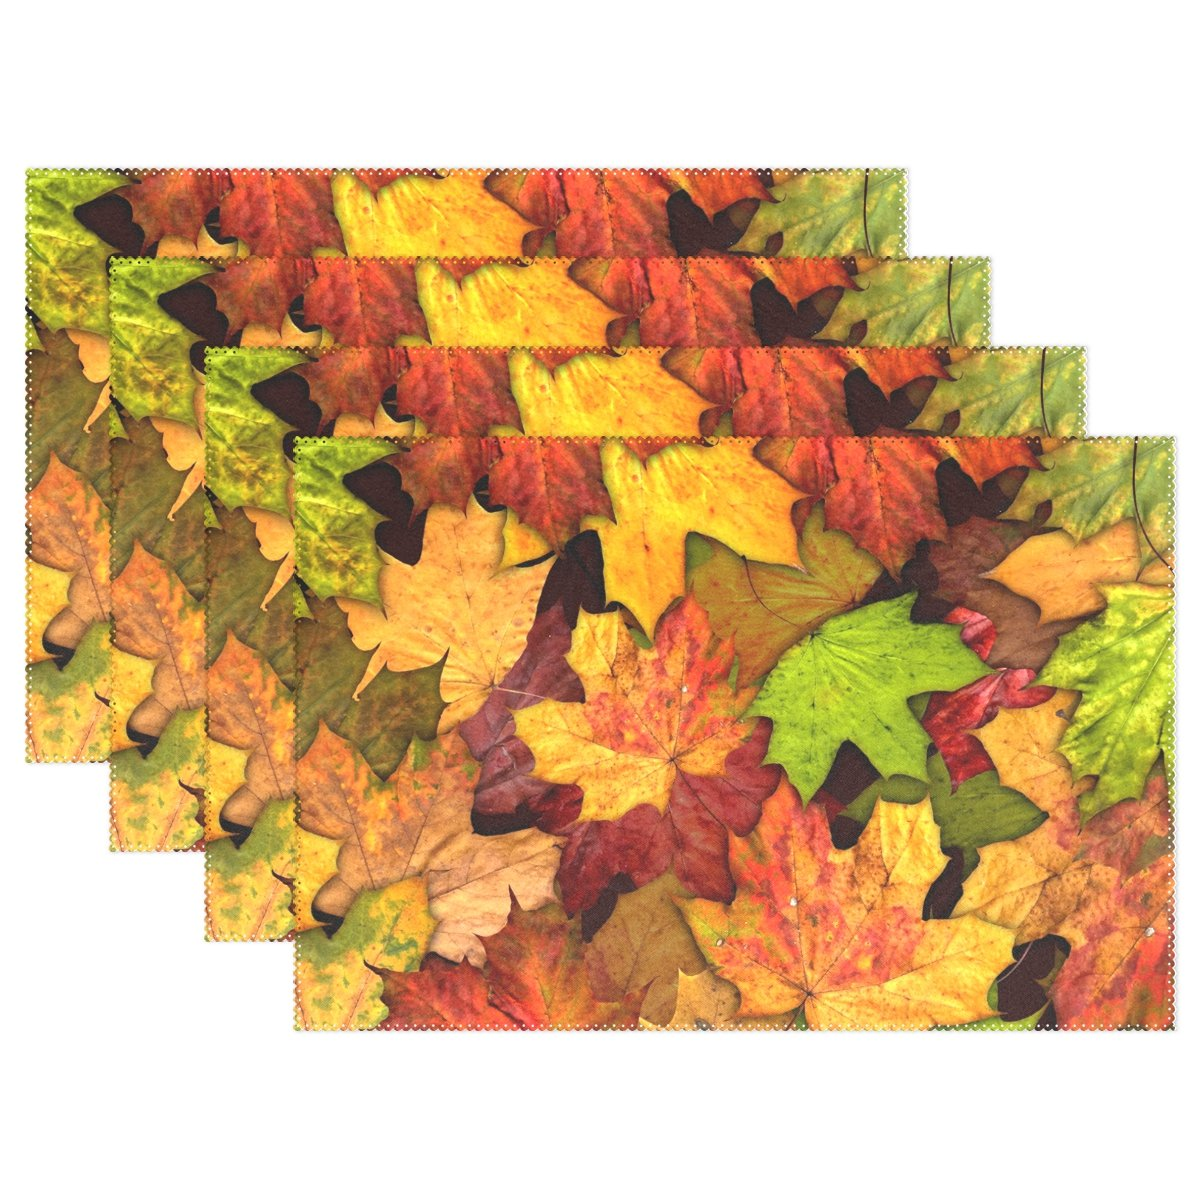 Naanle Autumn Leaves Placemat Set of 6, Fall Leaves Heat-Resistant Washable Table Place Mats for Kitchen Dining Table Decoration